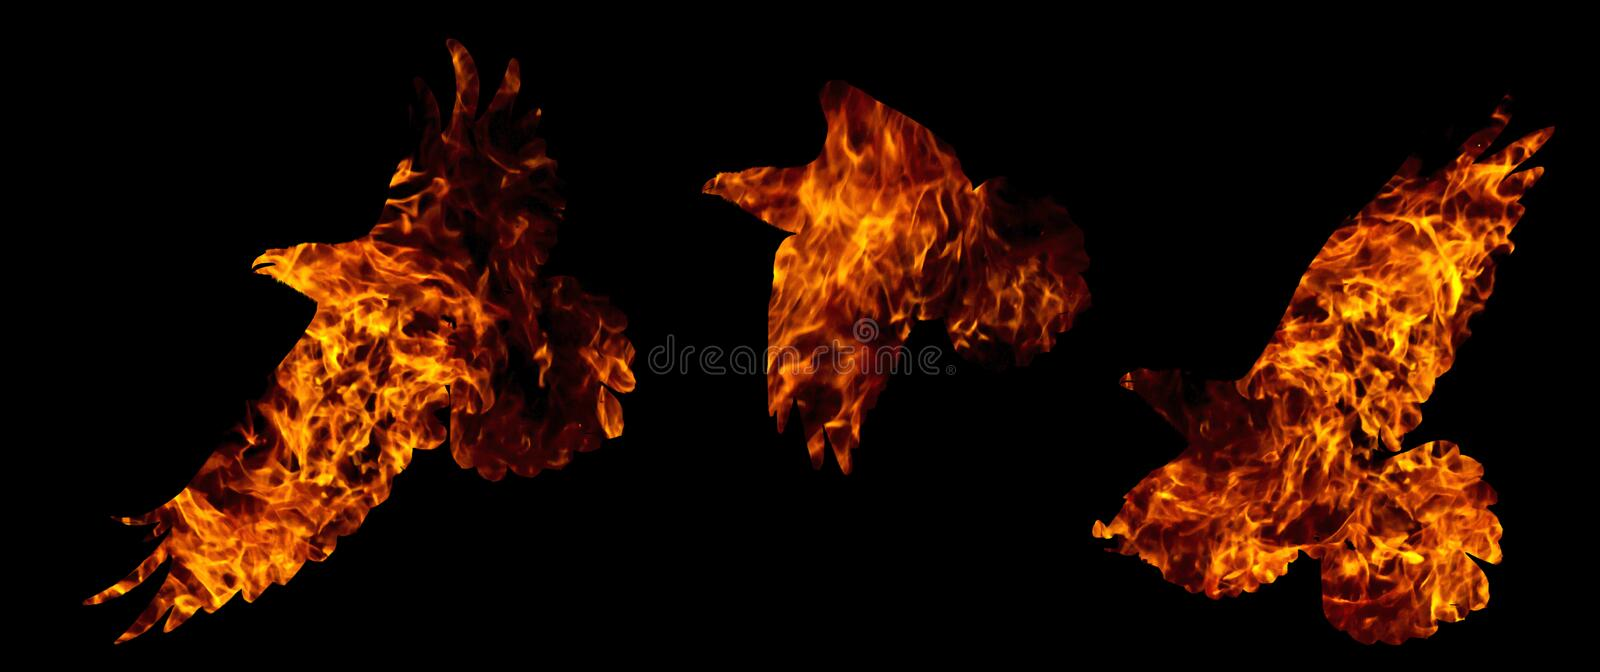 Common raven are fire isolated on black. Isolated objects, art, fire royalty free stock image